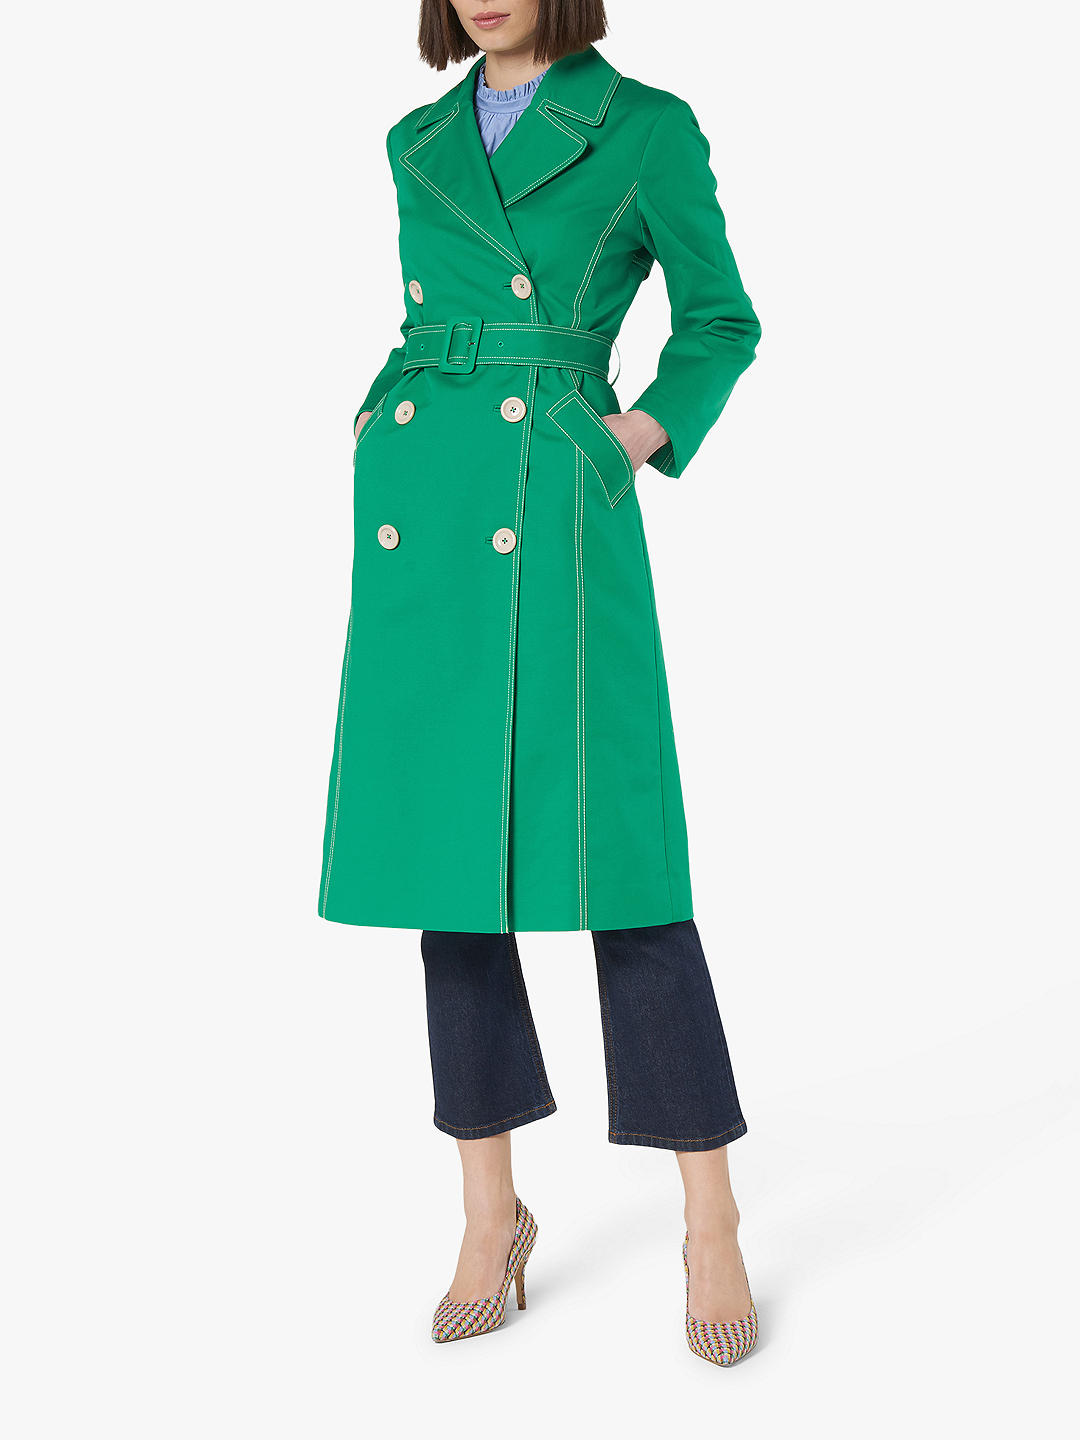 Green Trench Coat for Over 60s